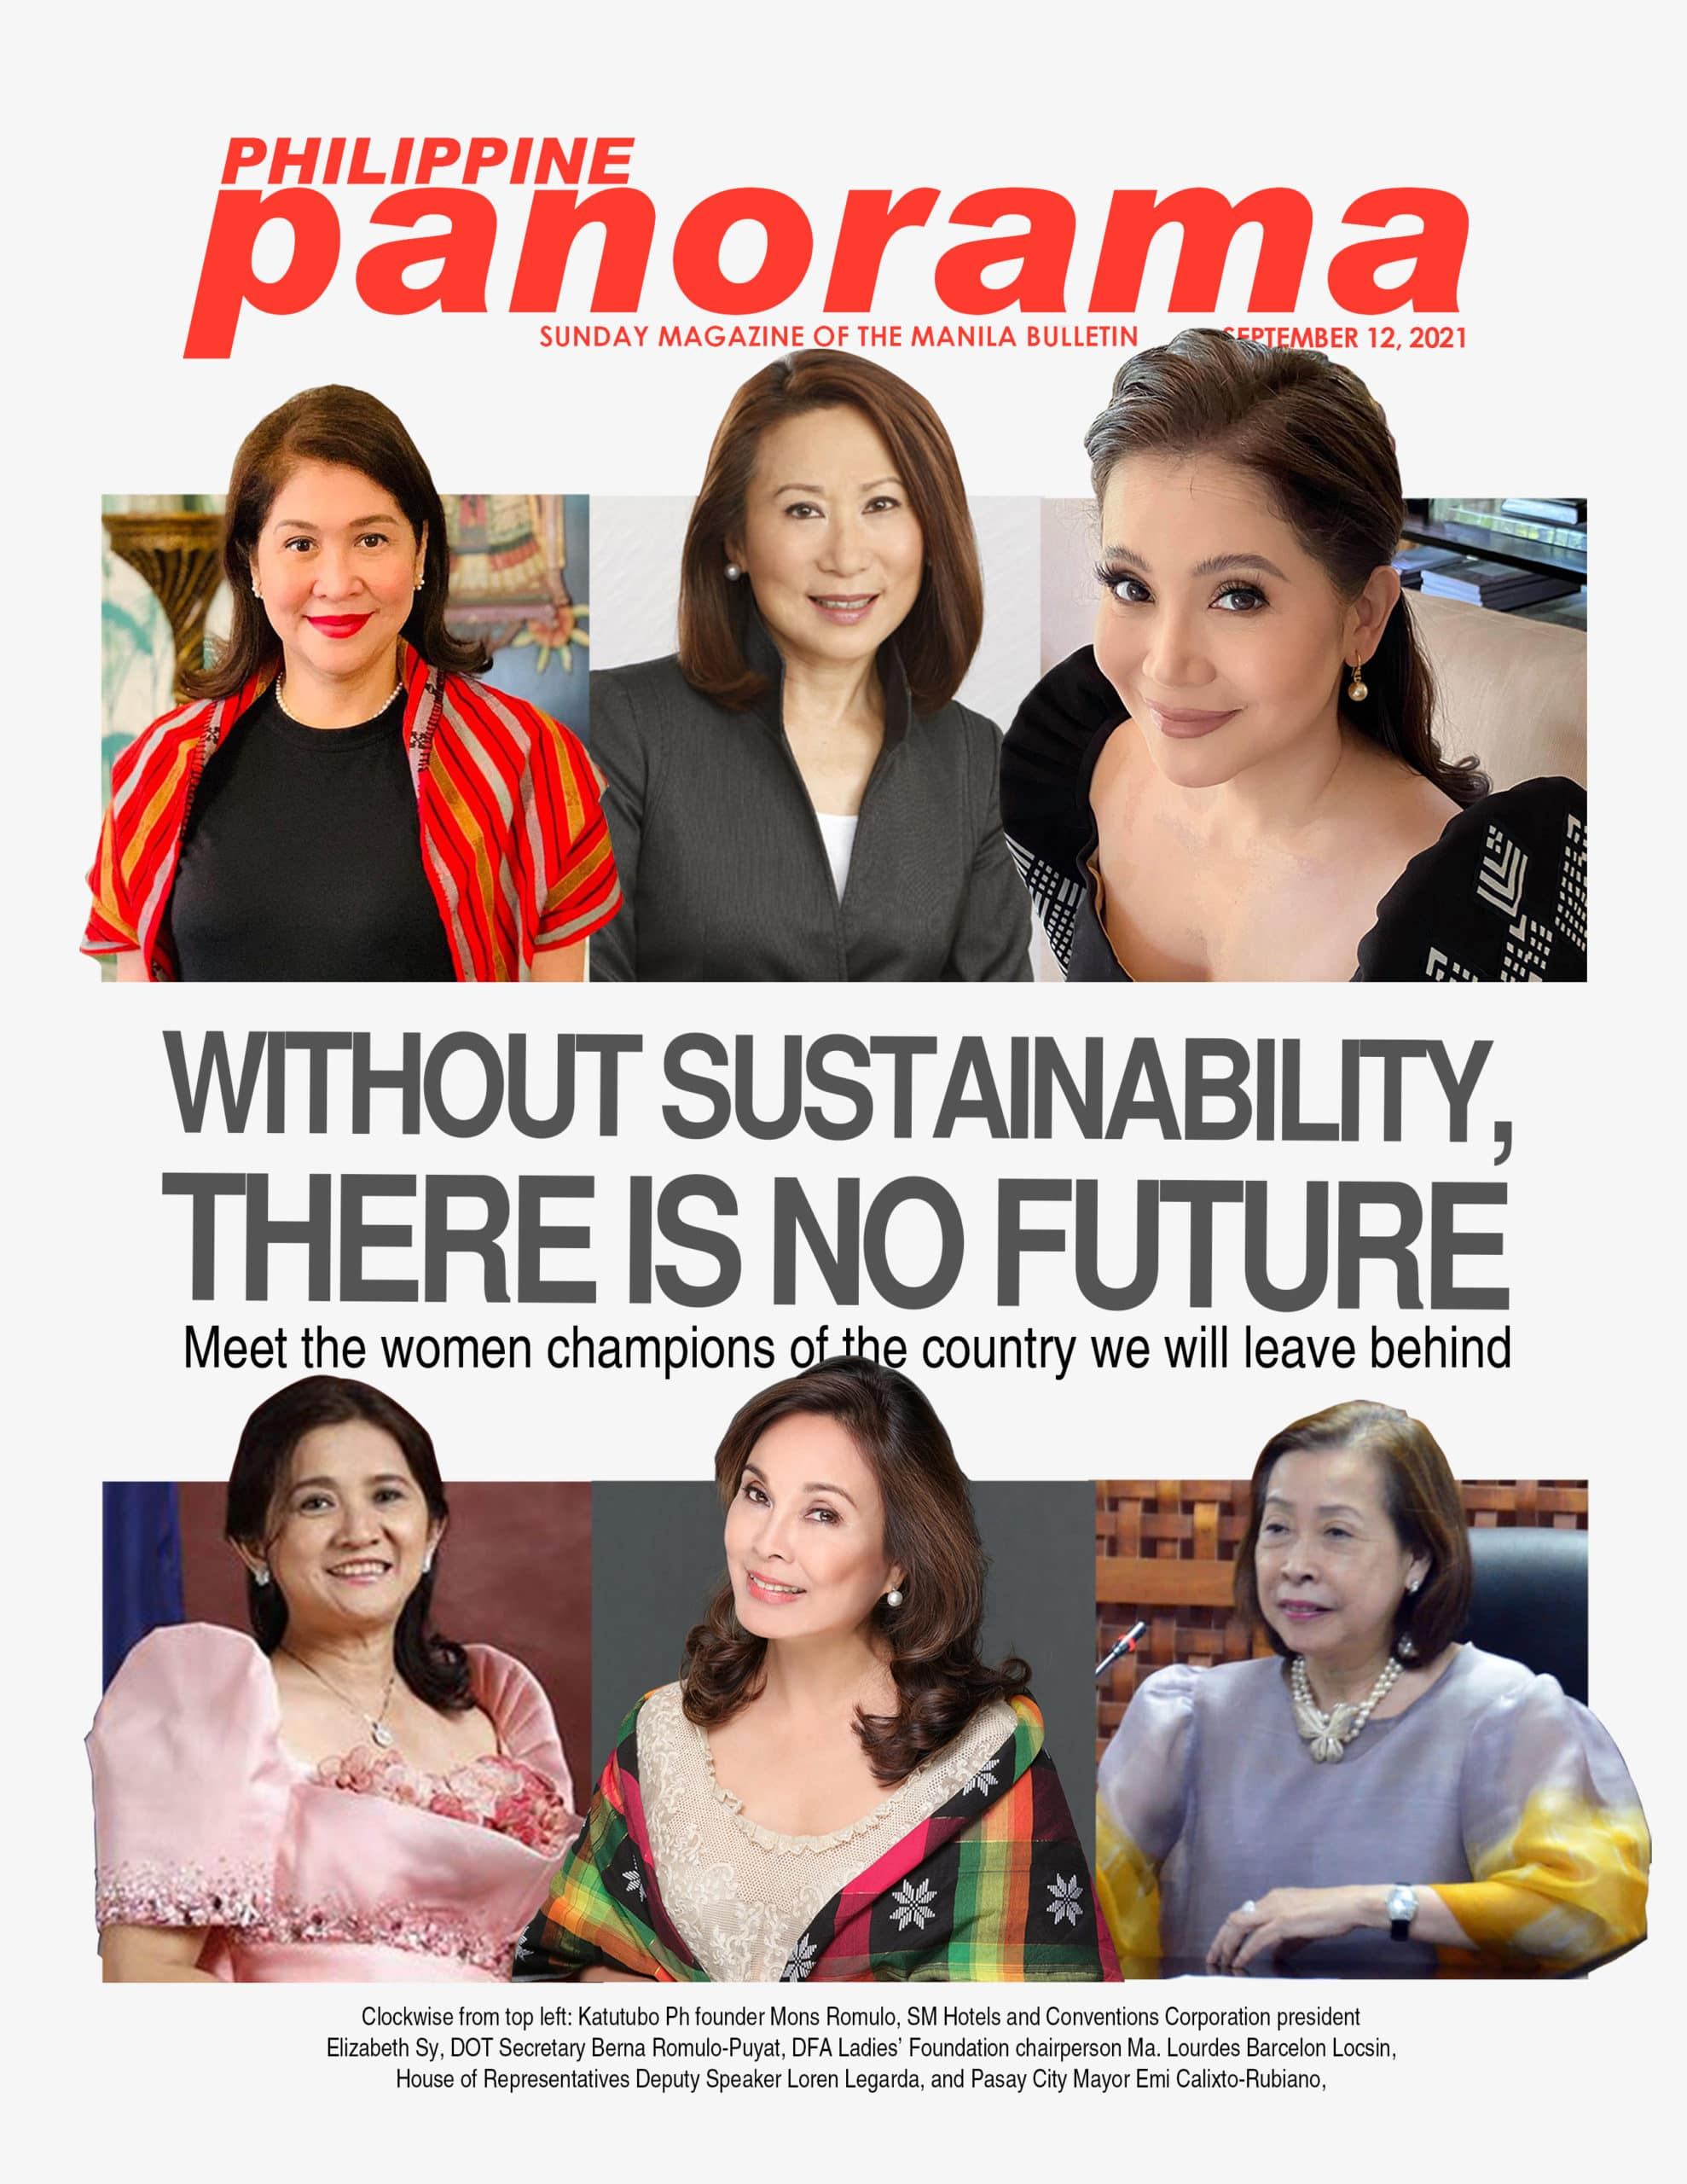 To champion sustainability is to make the future possible – Manila Bulletin